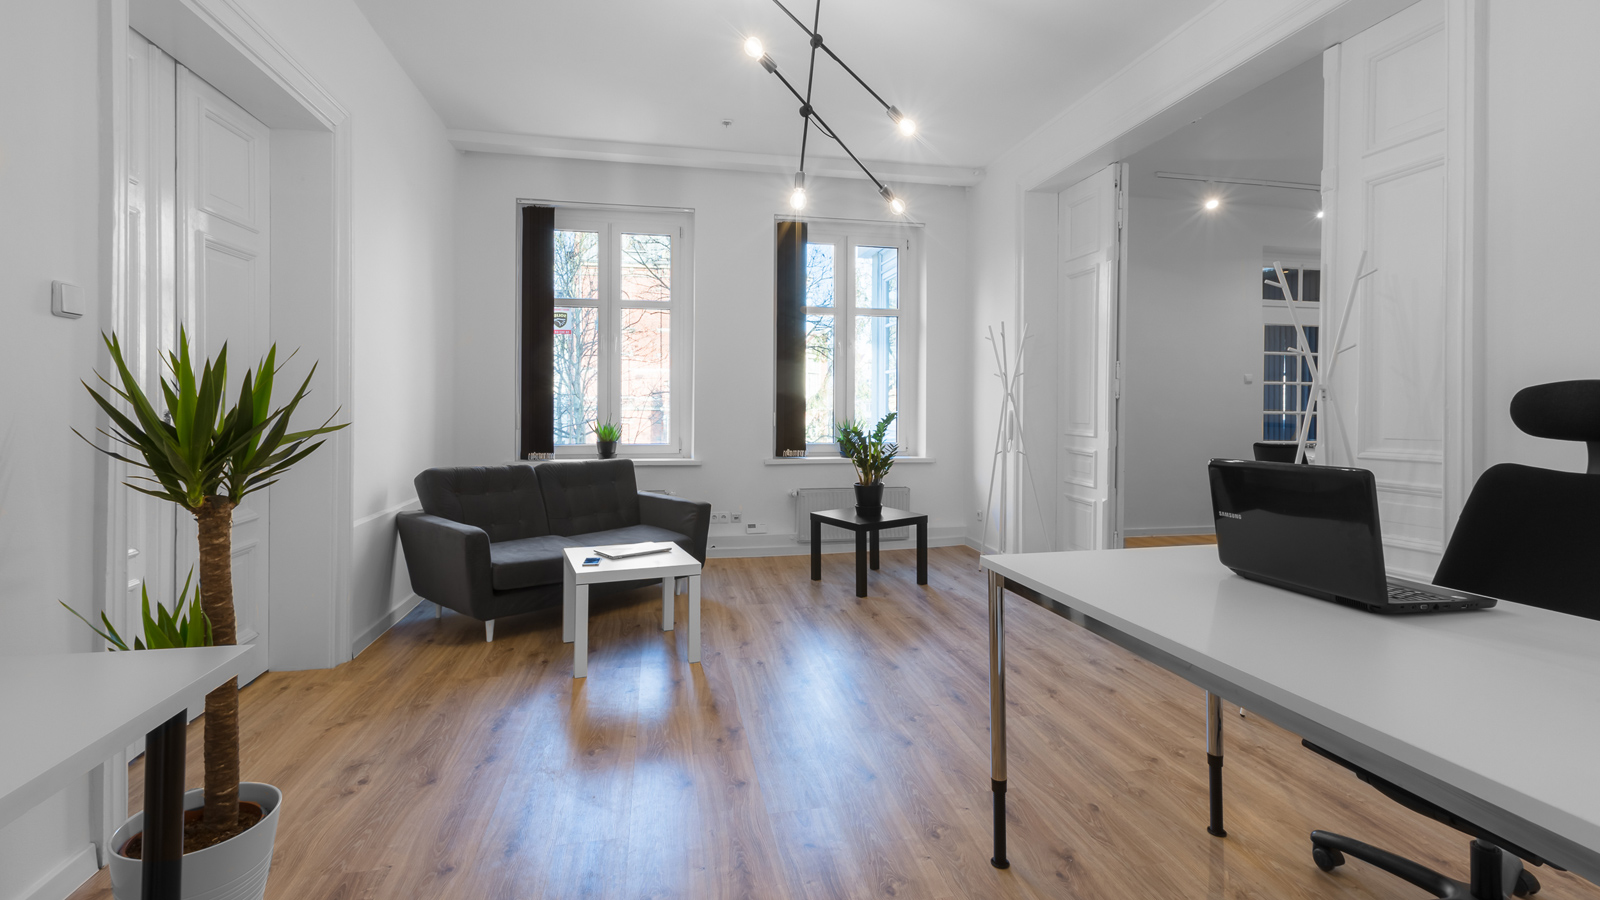 Working at GOOD SPACE disables all distractors which you may meet when working at home. The sober and yet sophisticated interior allows you to fully focus on what really matters to you.